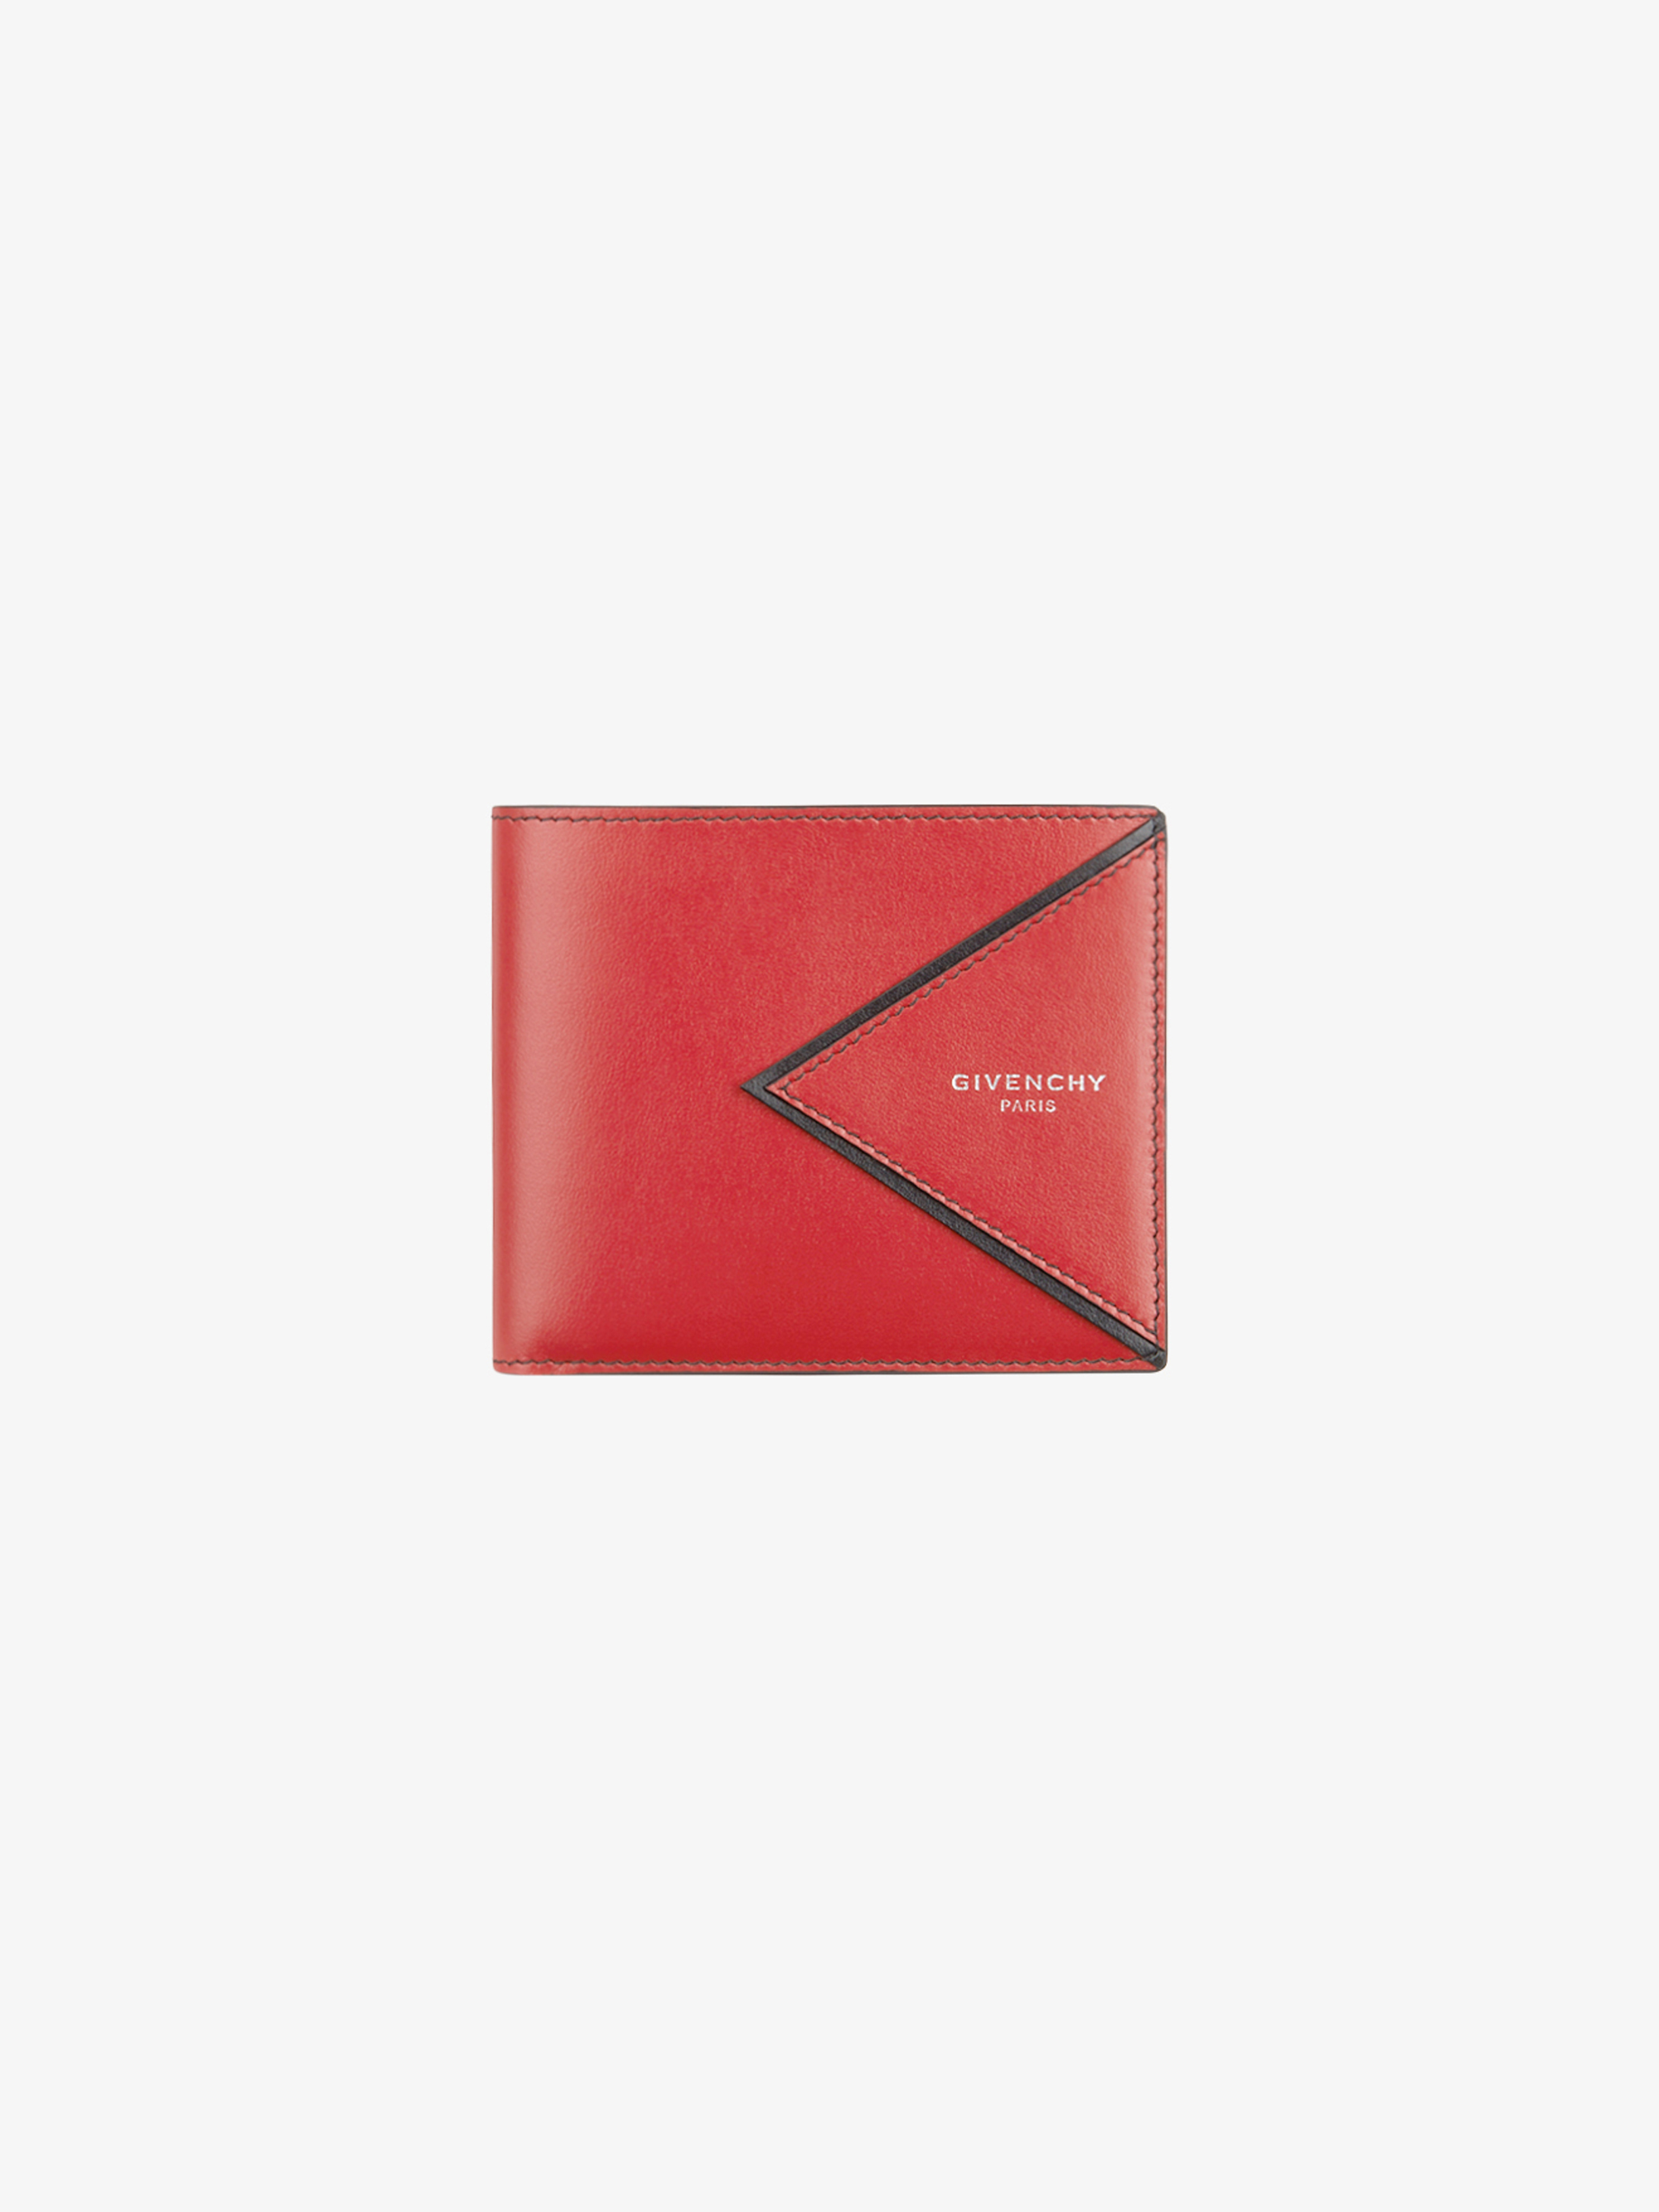 V shape cut wallet in leather